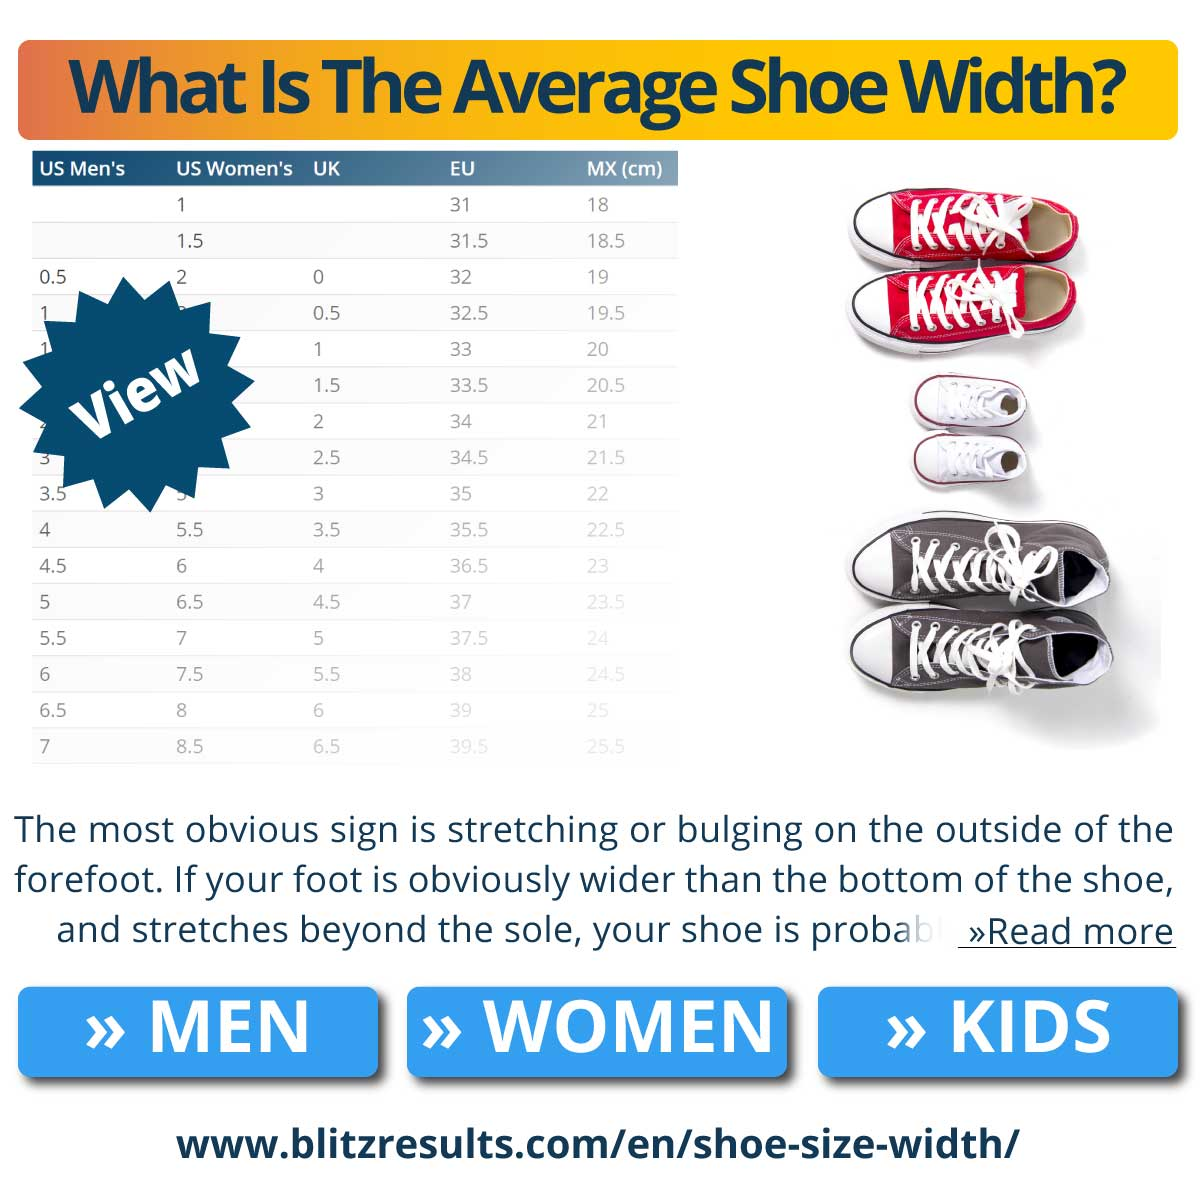 What Is The Average Shoe Width?